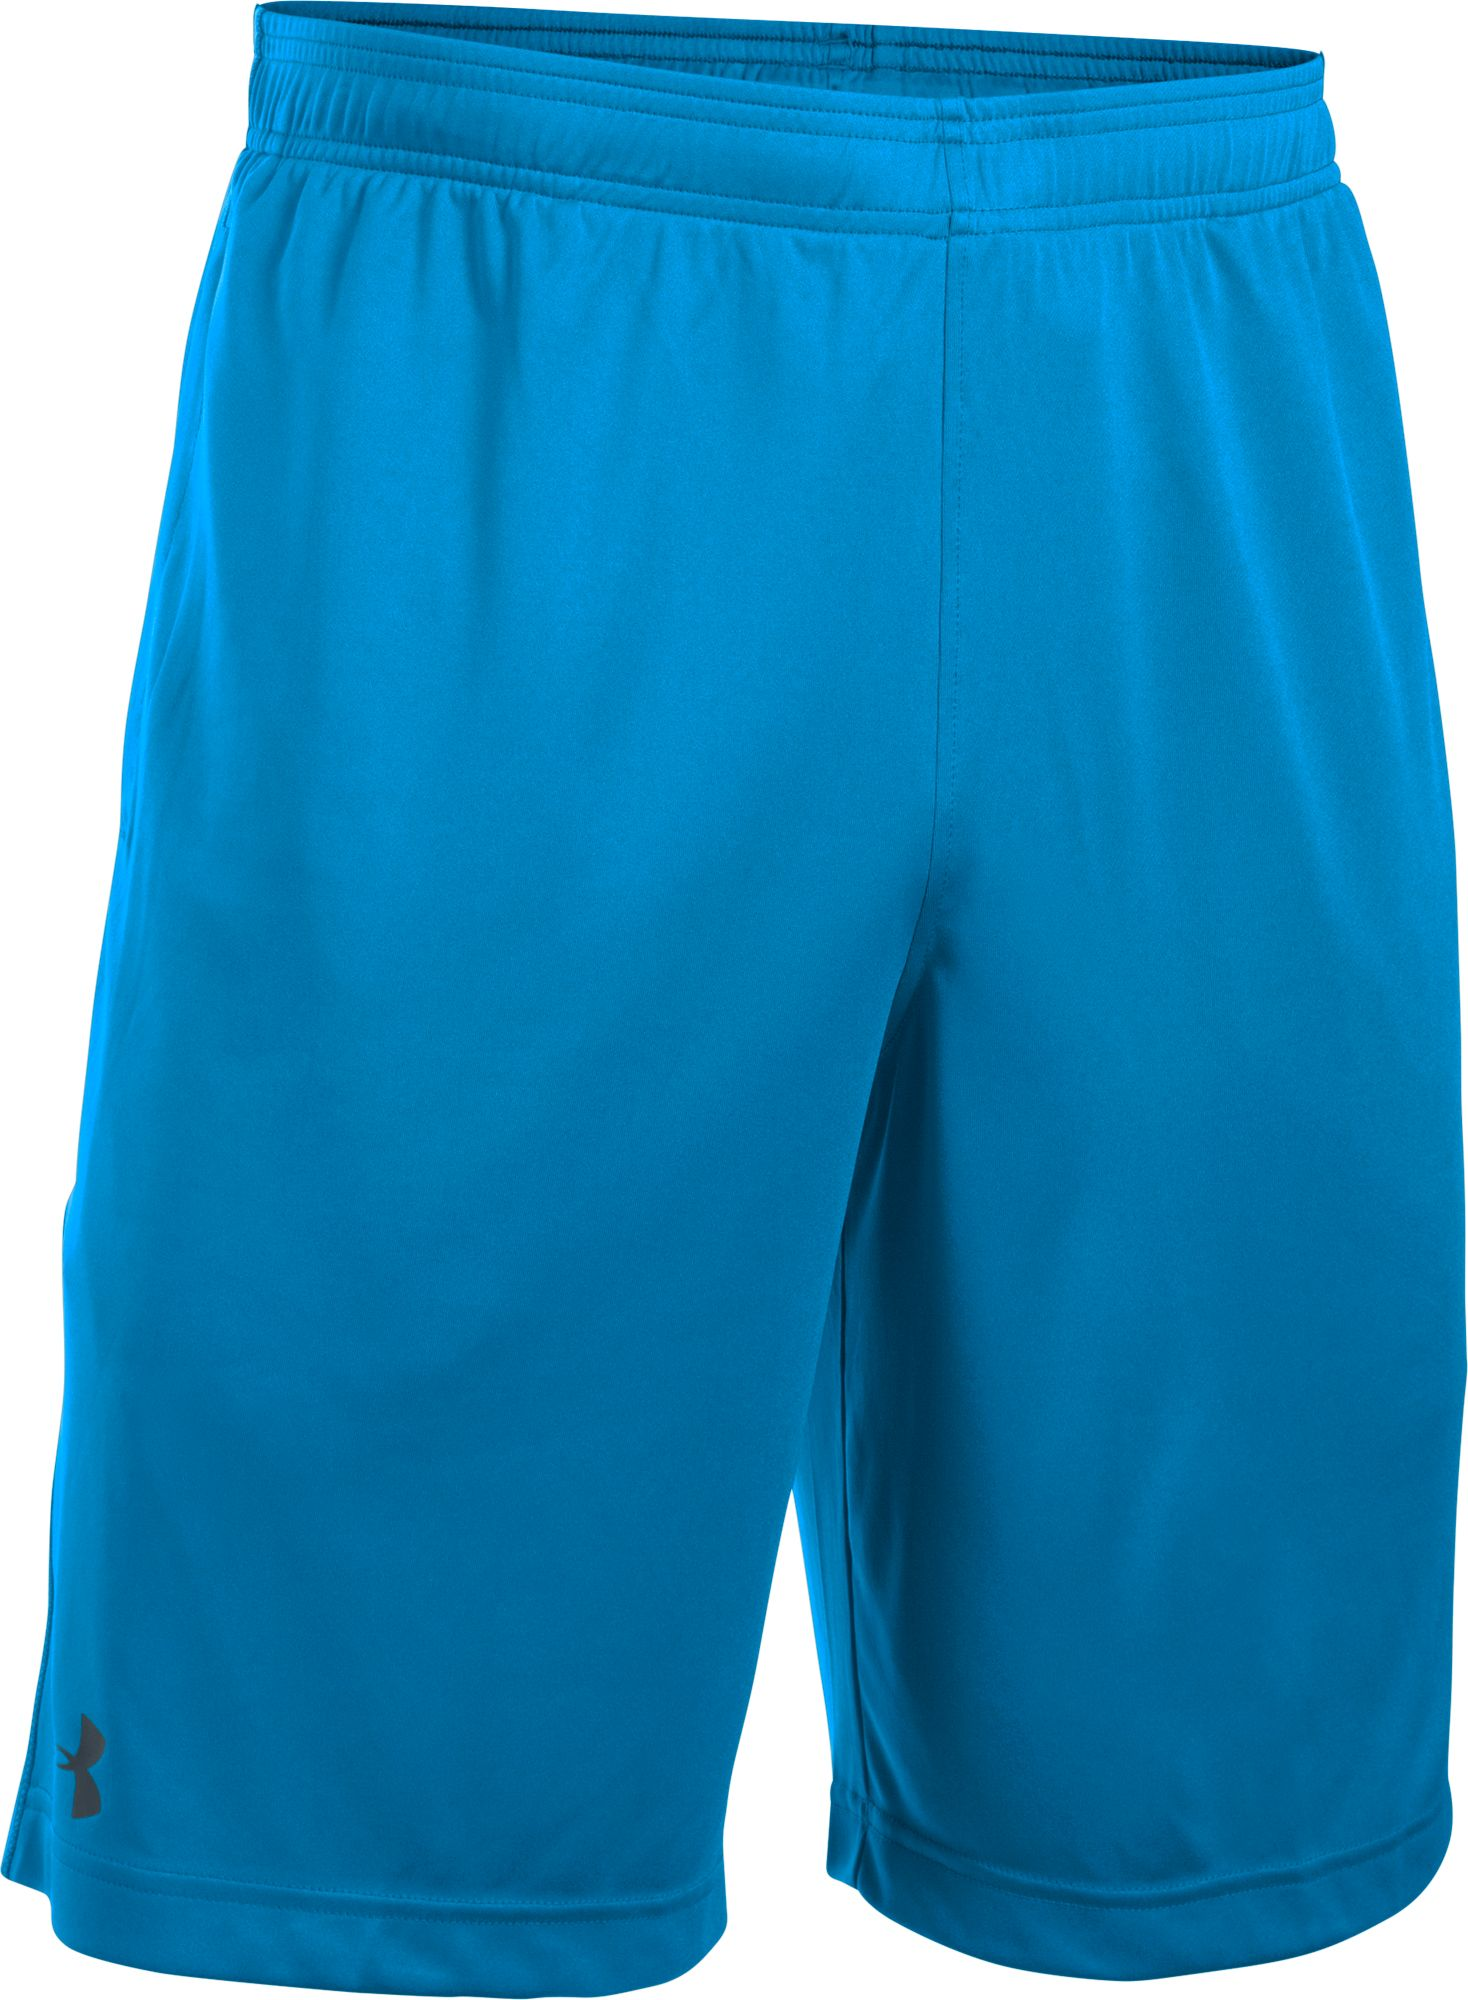 Under Armour Men's Tech Graphic Shorts | DICK'S Sporting Goods